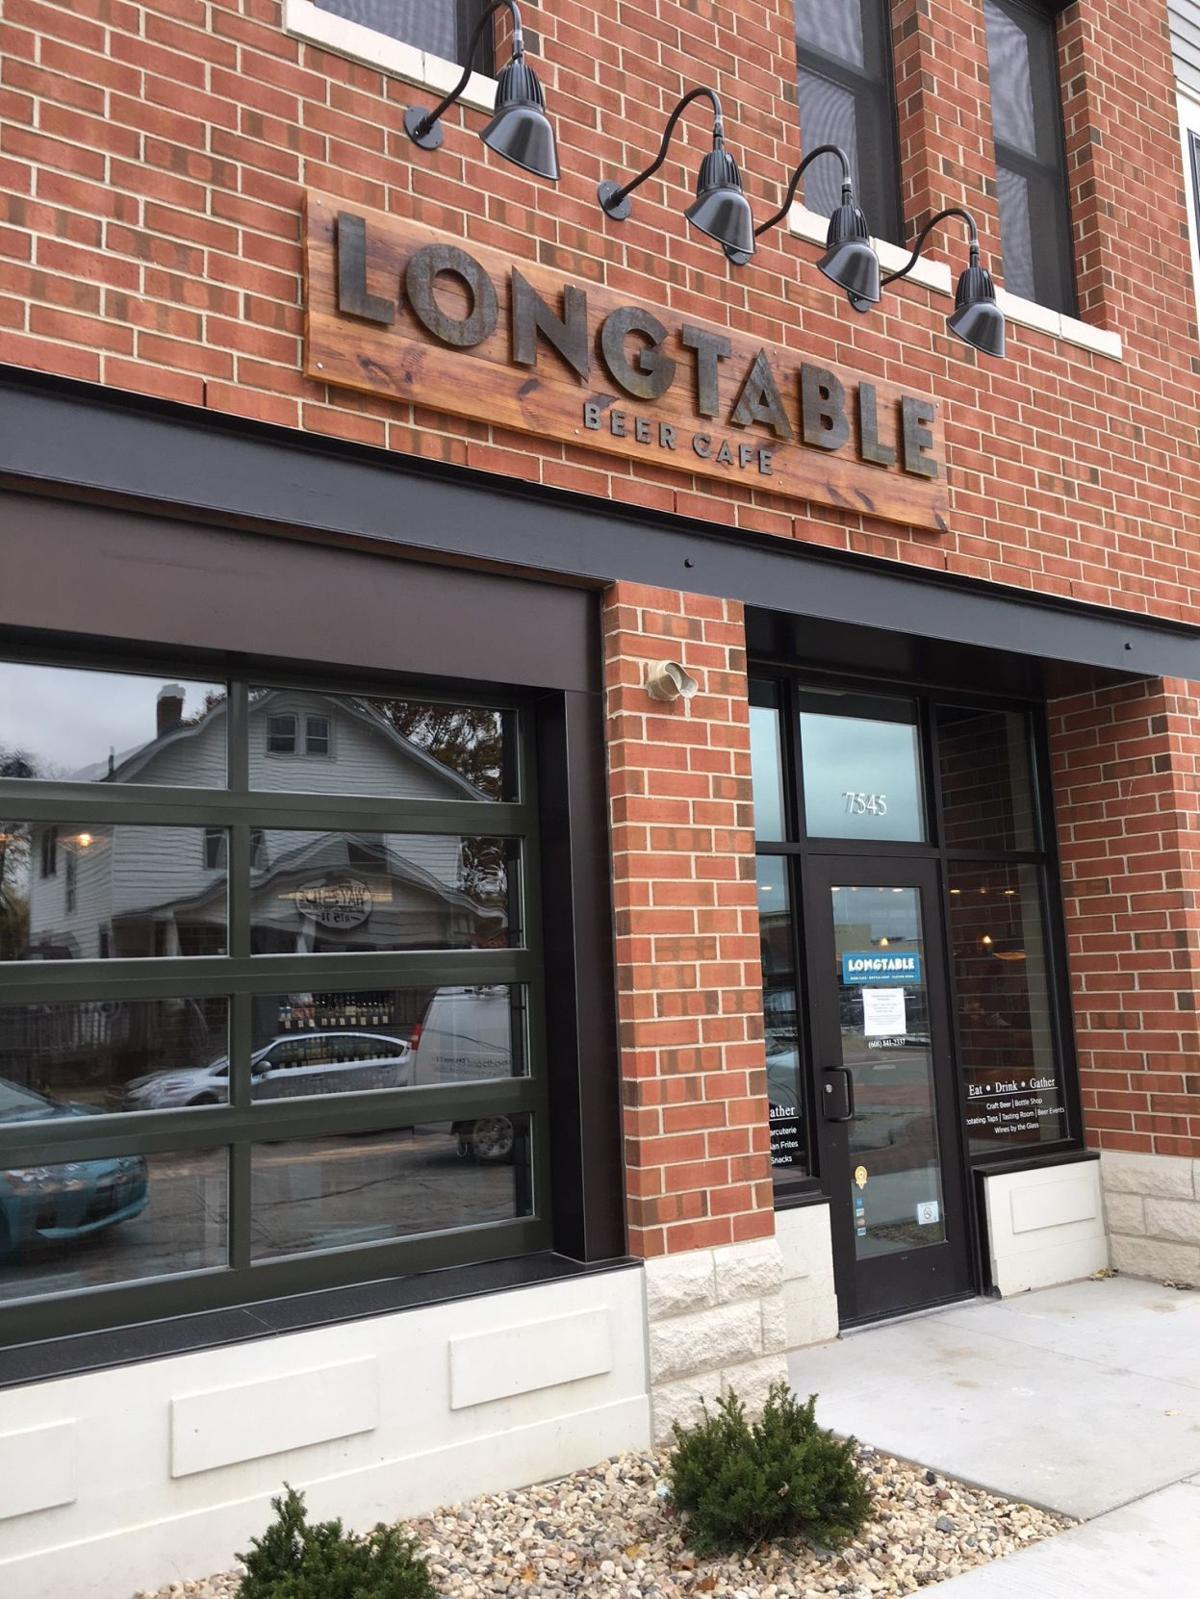 Longtable Beer Cafe Scheduled To Open Tuesday In Middleton